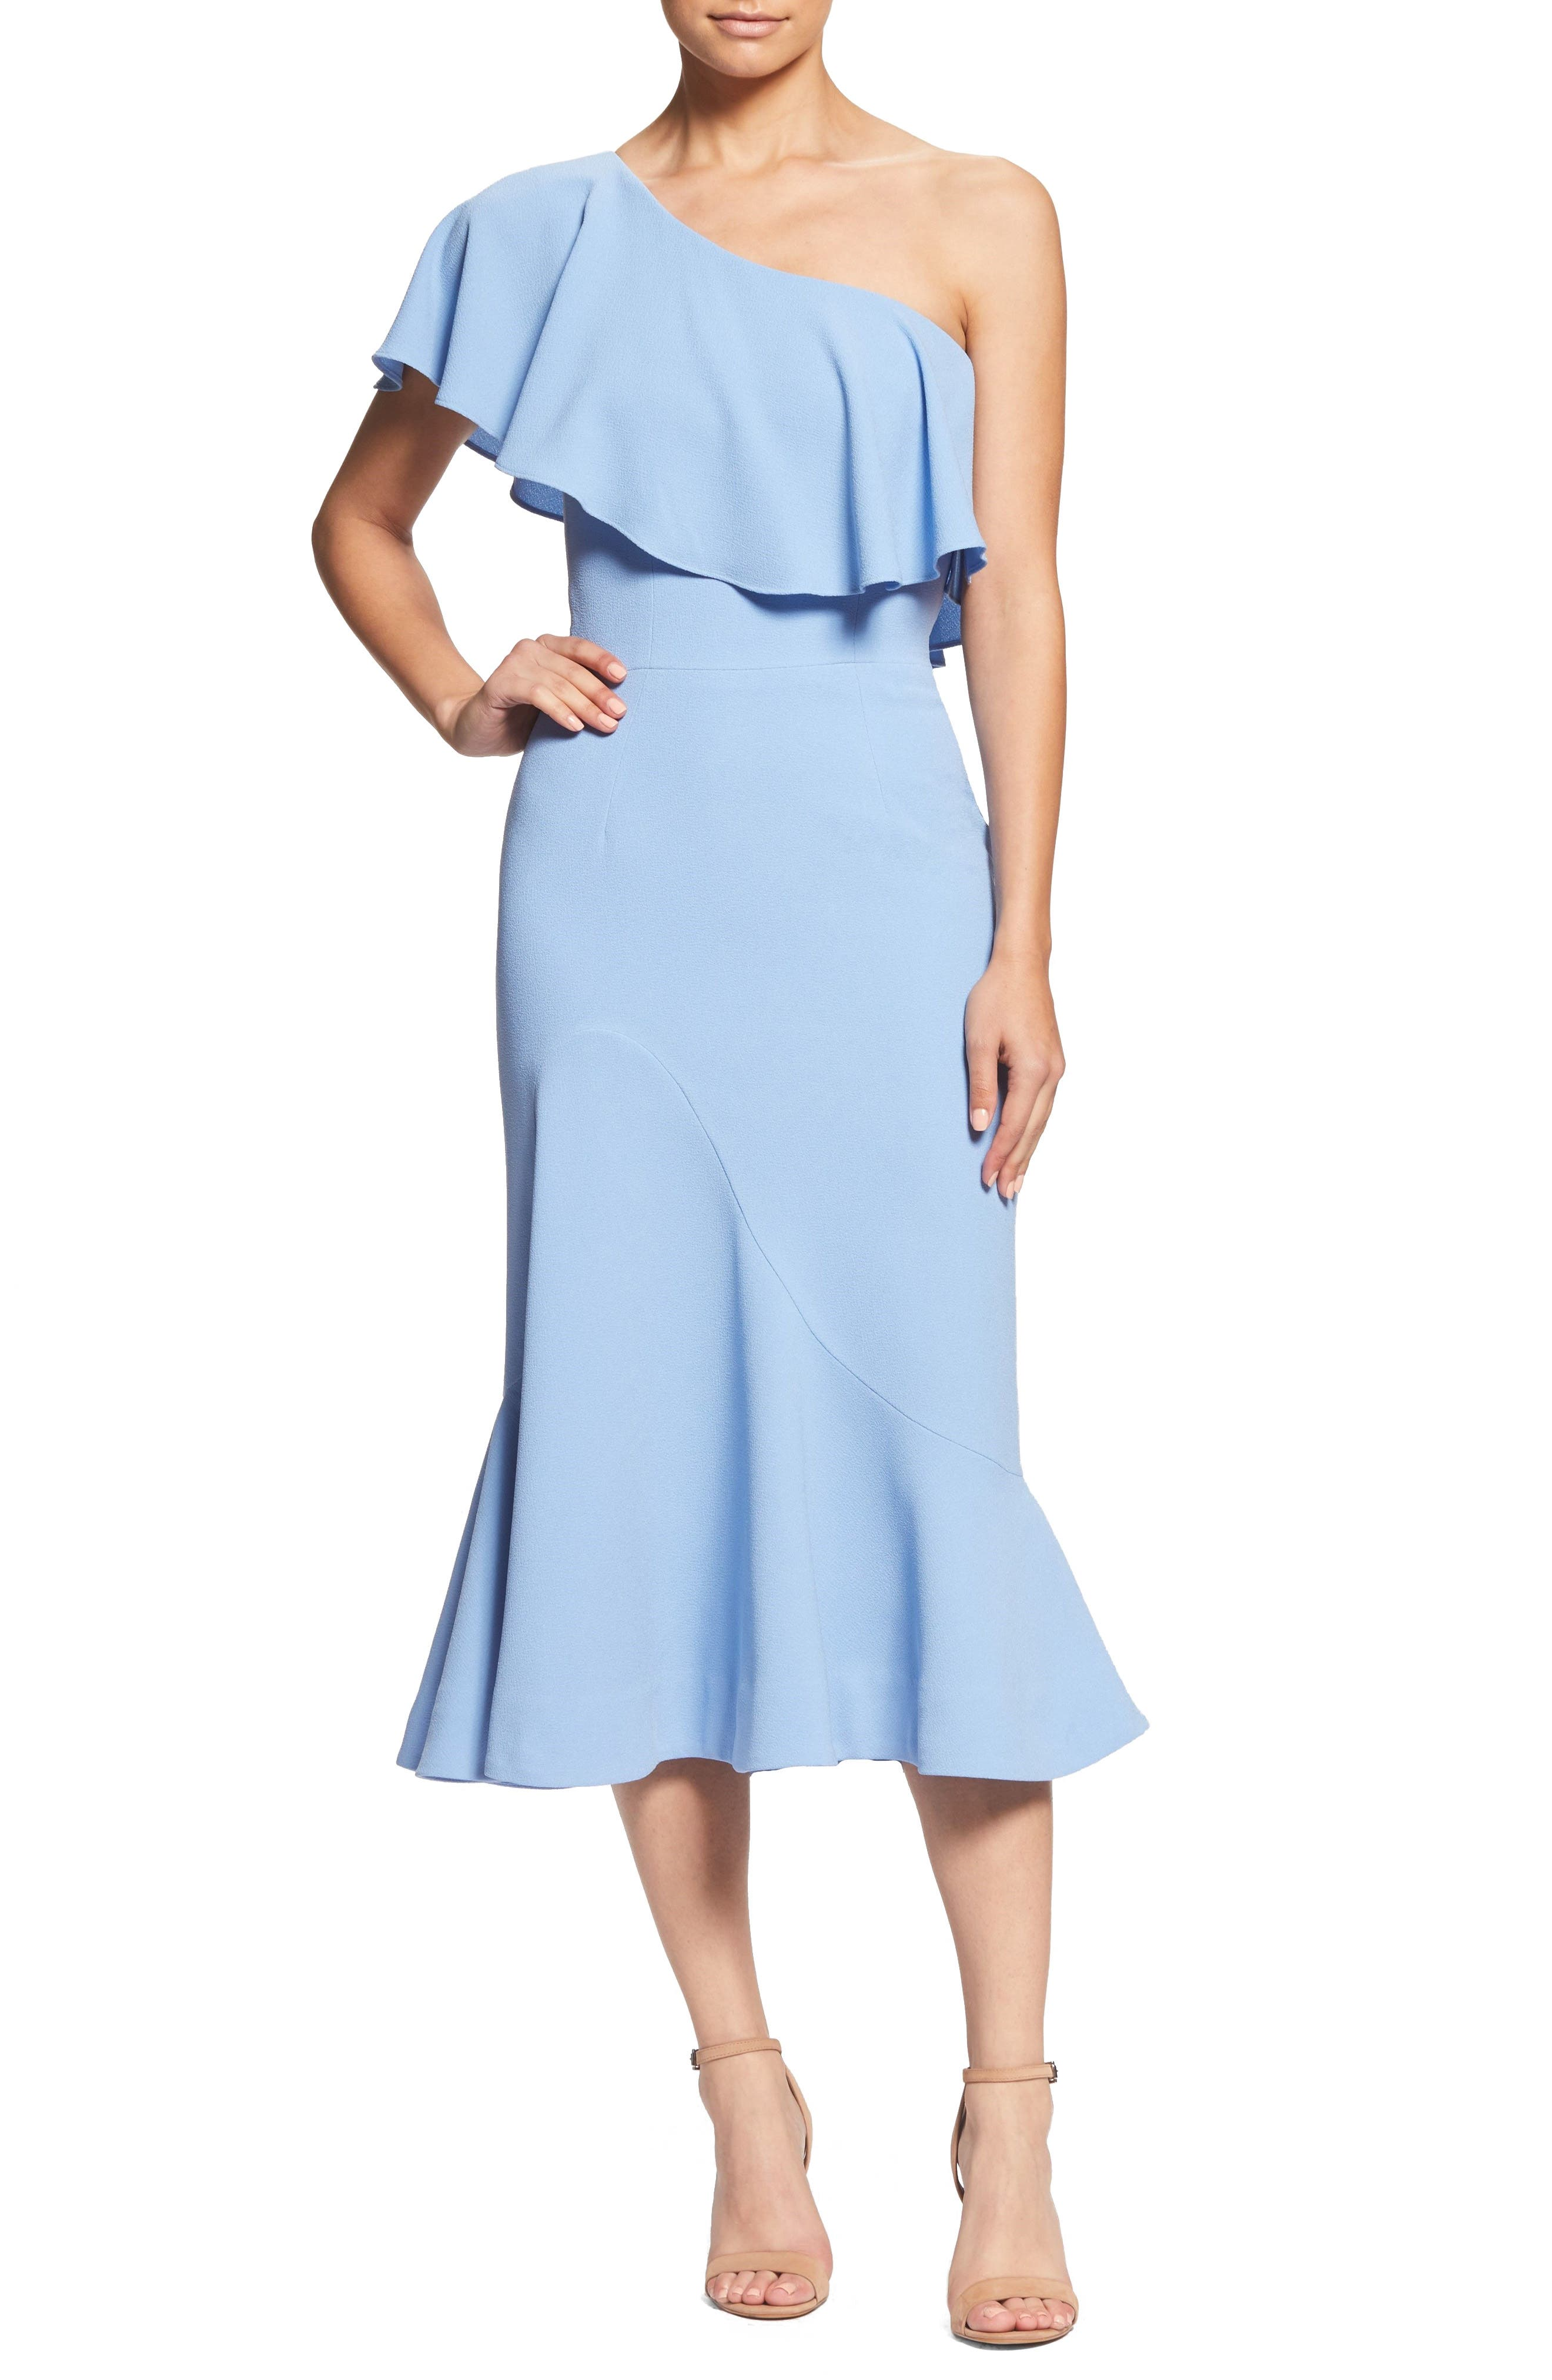 Raquel One-Shoulder Trumpet Dress,                         Main,                         color, Ice Blue